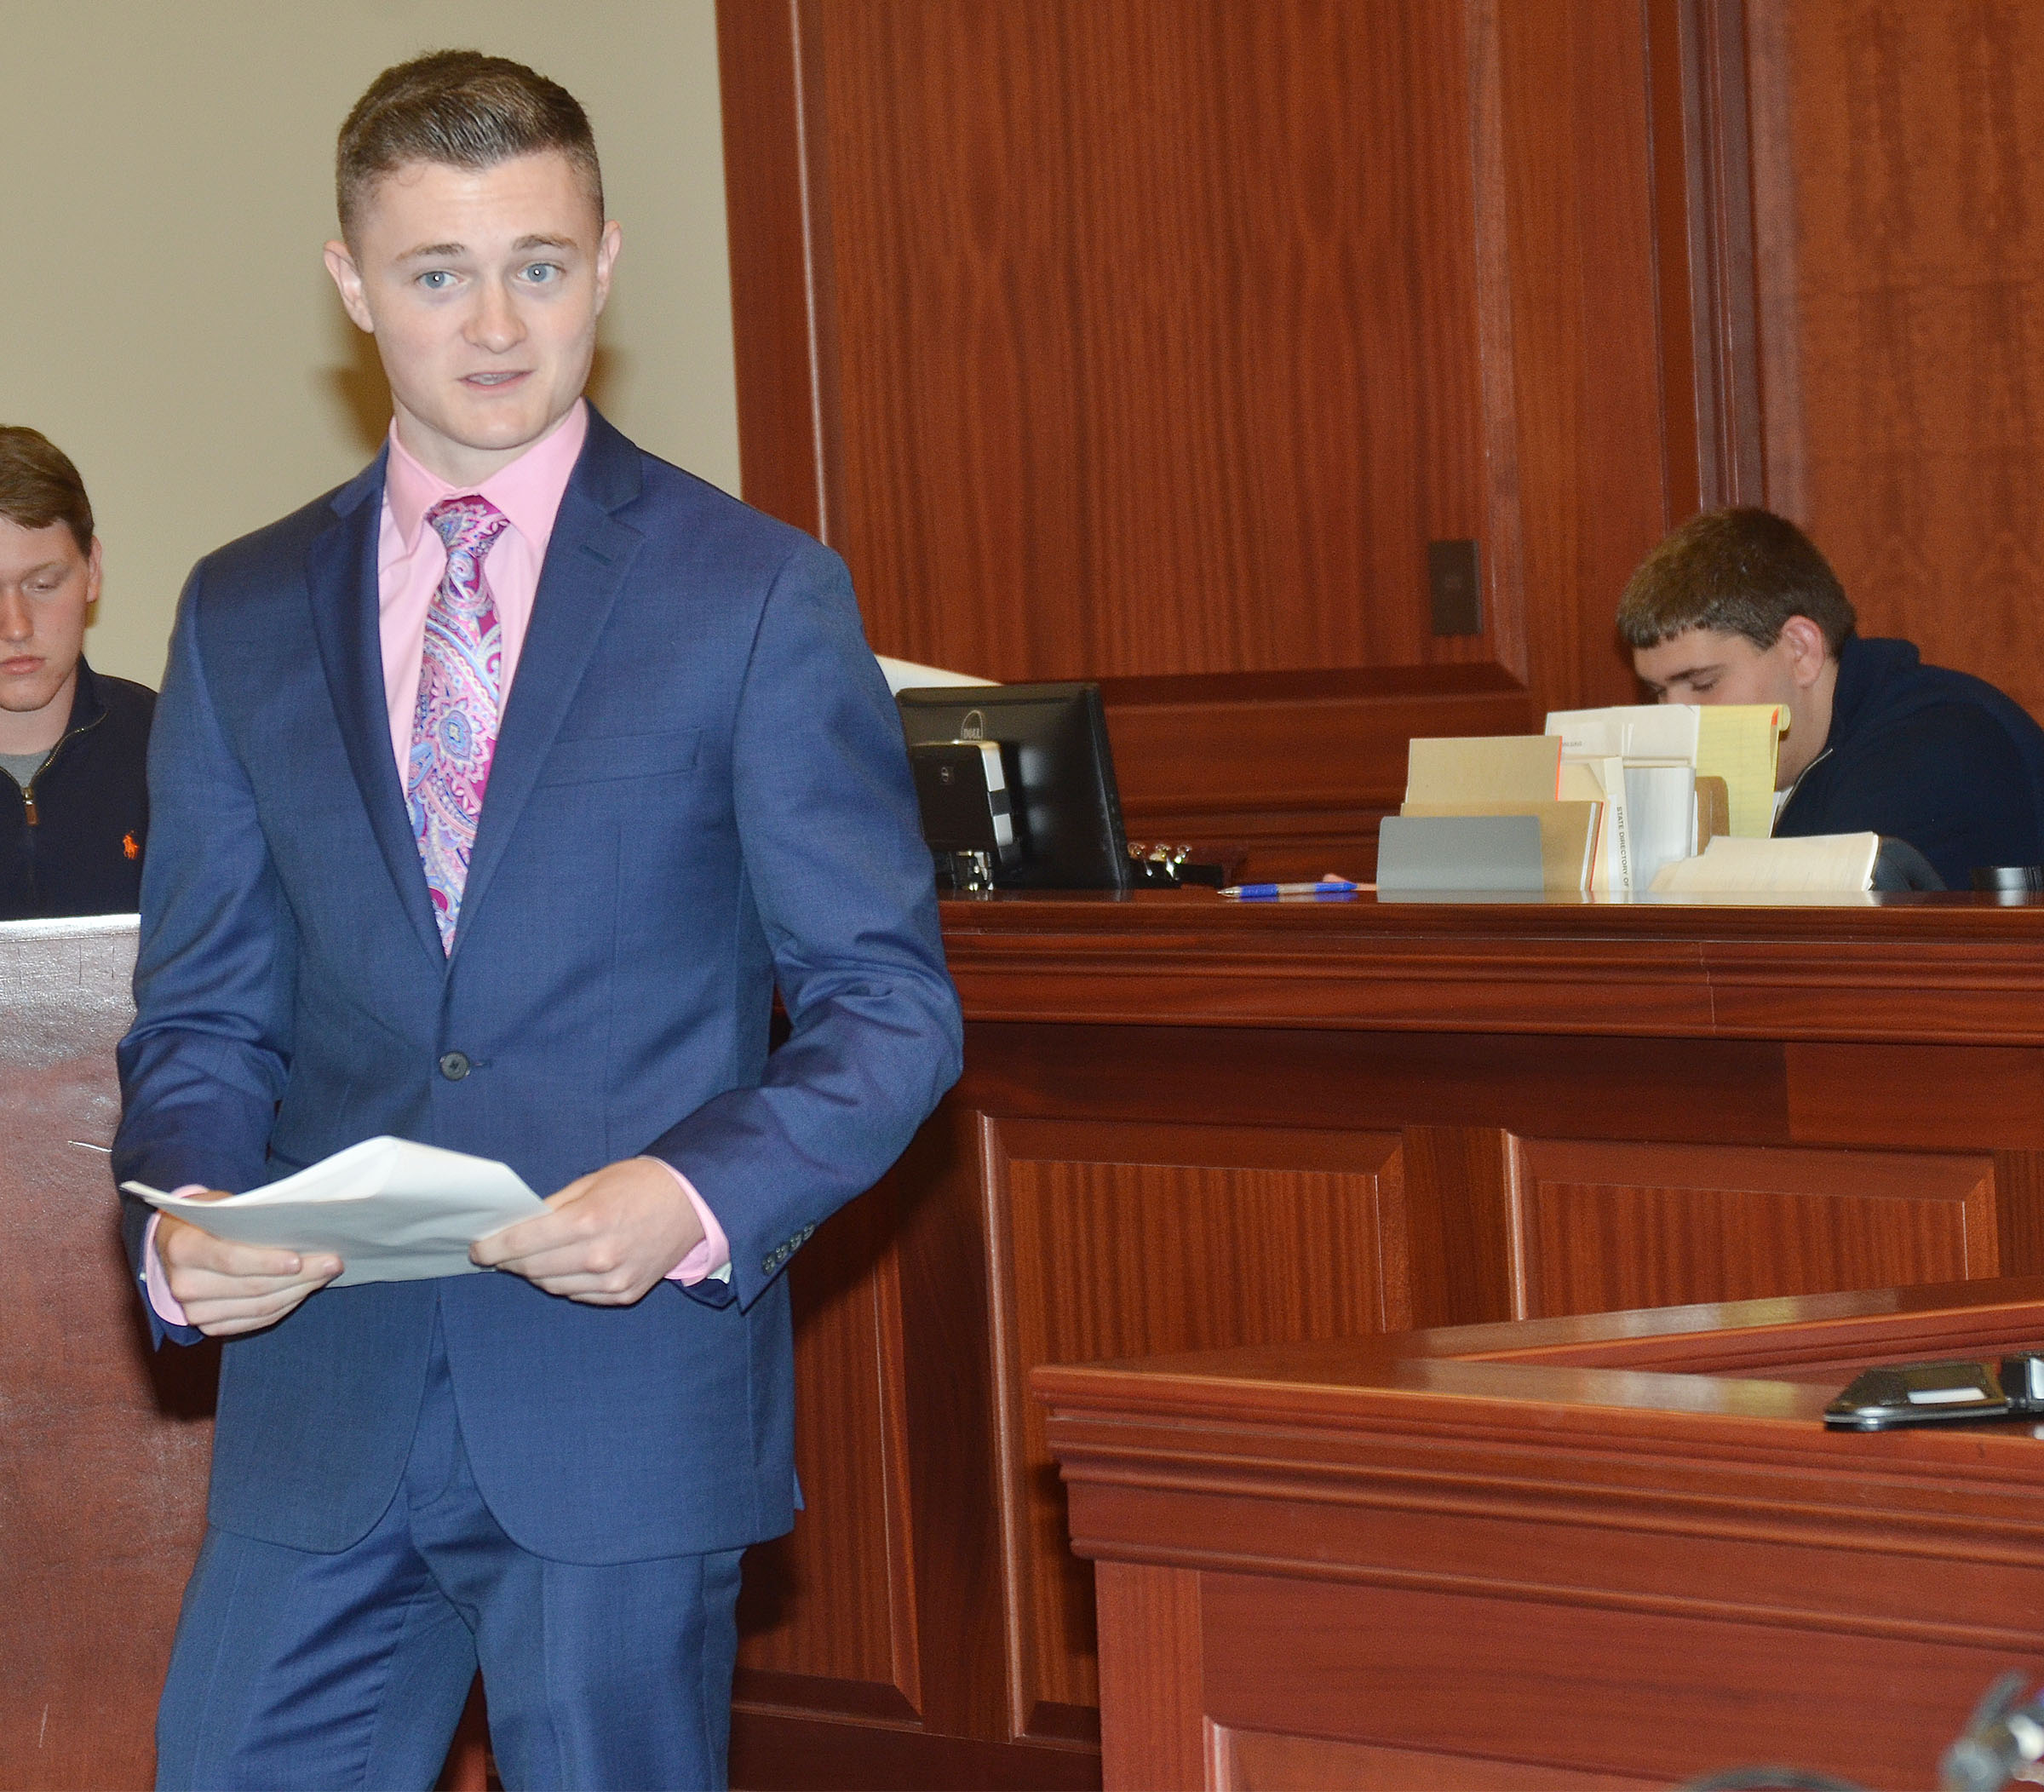 CHS junior Bryce Richardson gives his opening statement as the prosecutor.